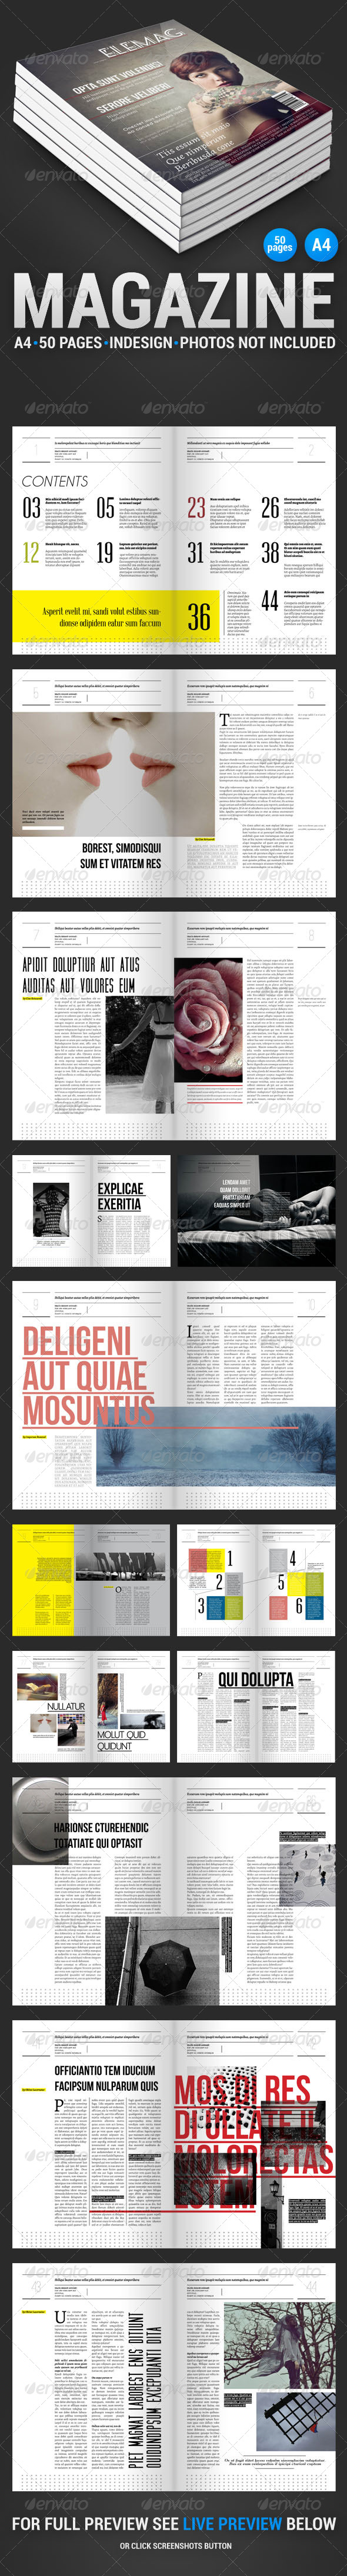 EleMag 50 Pages Magazine - Magazines Print Templates